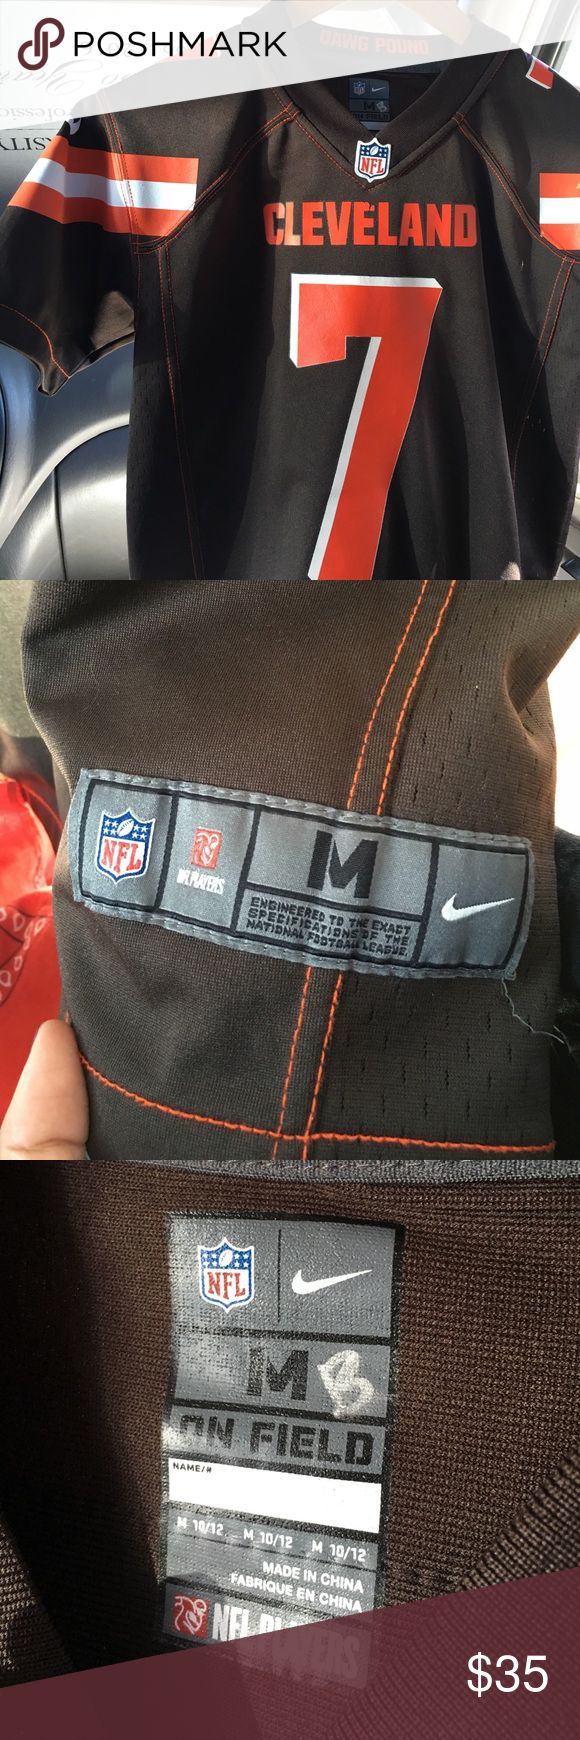 NFL Cleveland Browns Remi Jersey normal condition. only flaw is very minor peeling on 'cleveland' lettering. otherwise great condition.  pit to pit measures 18.5in & shoulder down measures about 23in. tag says medium.  casual jersey for cleveland fans. 🏉 NFL Shirts Tees - Short Sleeve